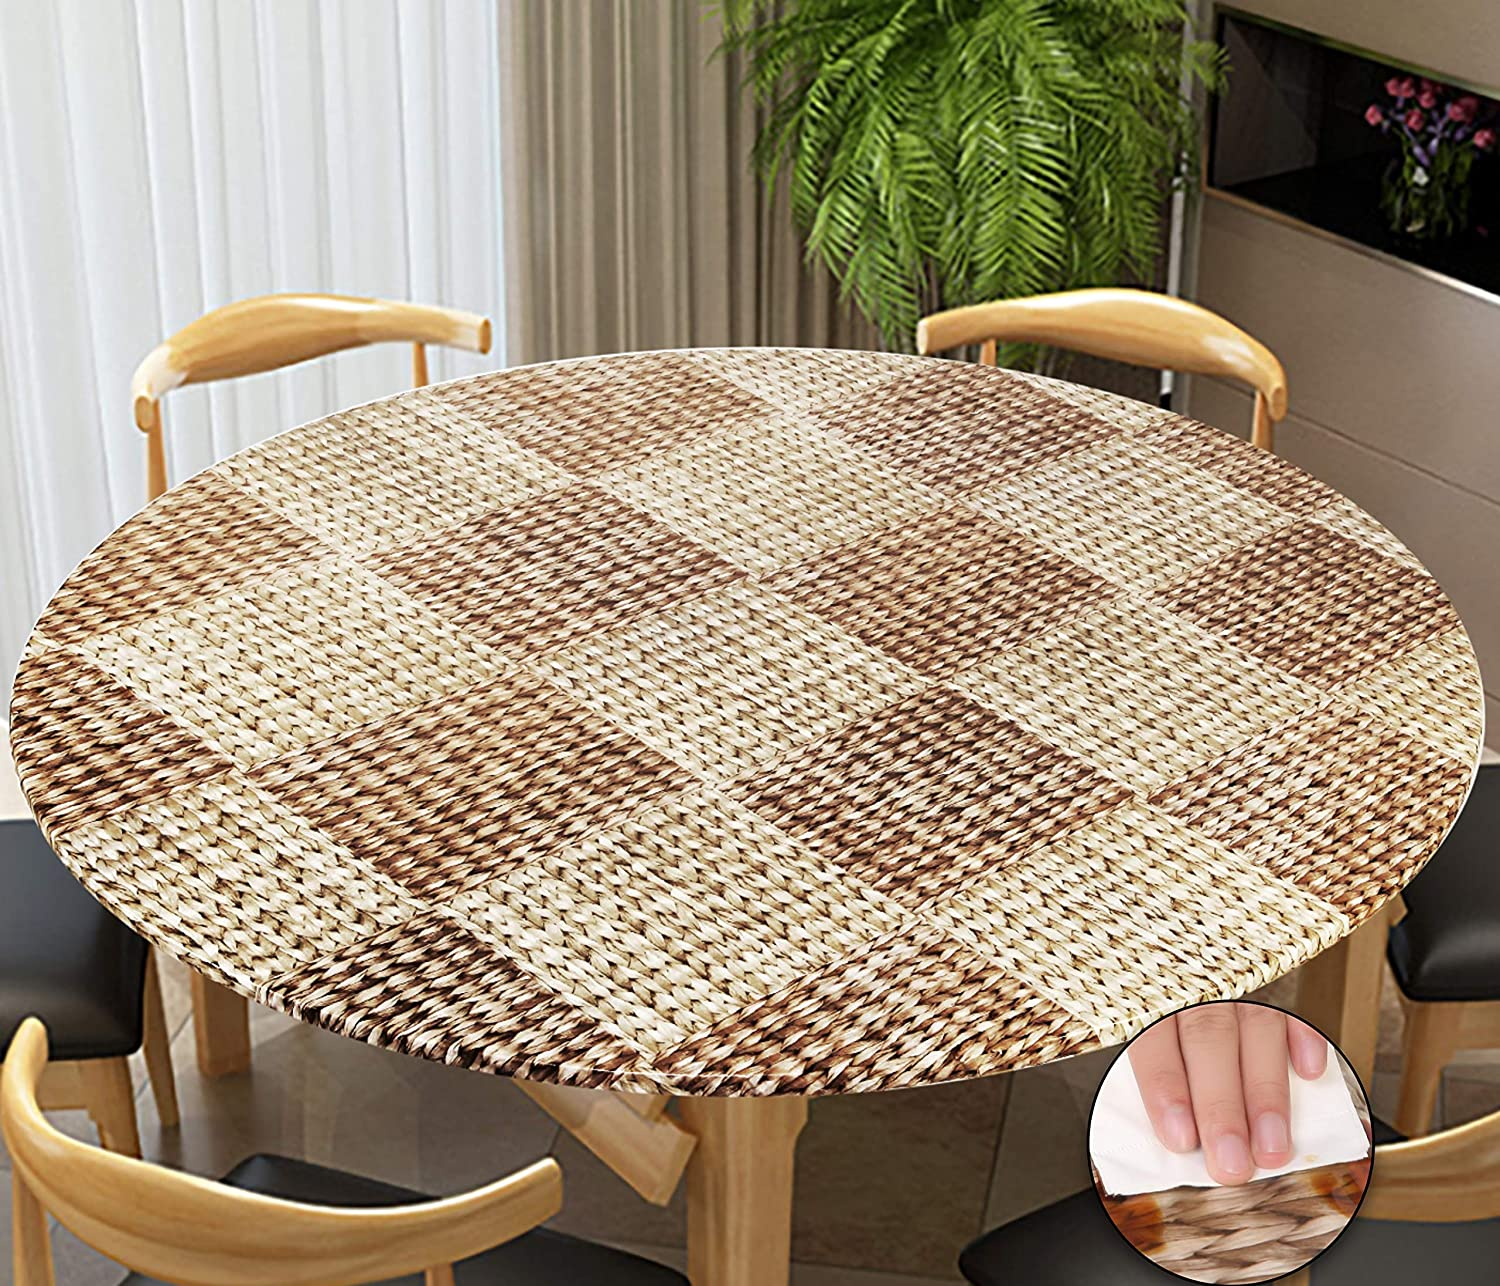 Rally Home Goods Indoor Outdoor Patio Round Fitted Vinyl Tablecloth, Flannel Backing, Elastic Edge, Waterproof Wipeable Plastic Cover, Wicker Pattern for 6-Seat Table of 43-56'' Diameter